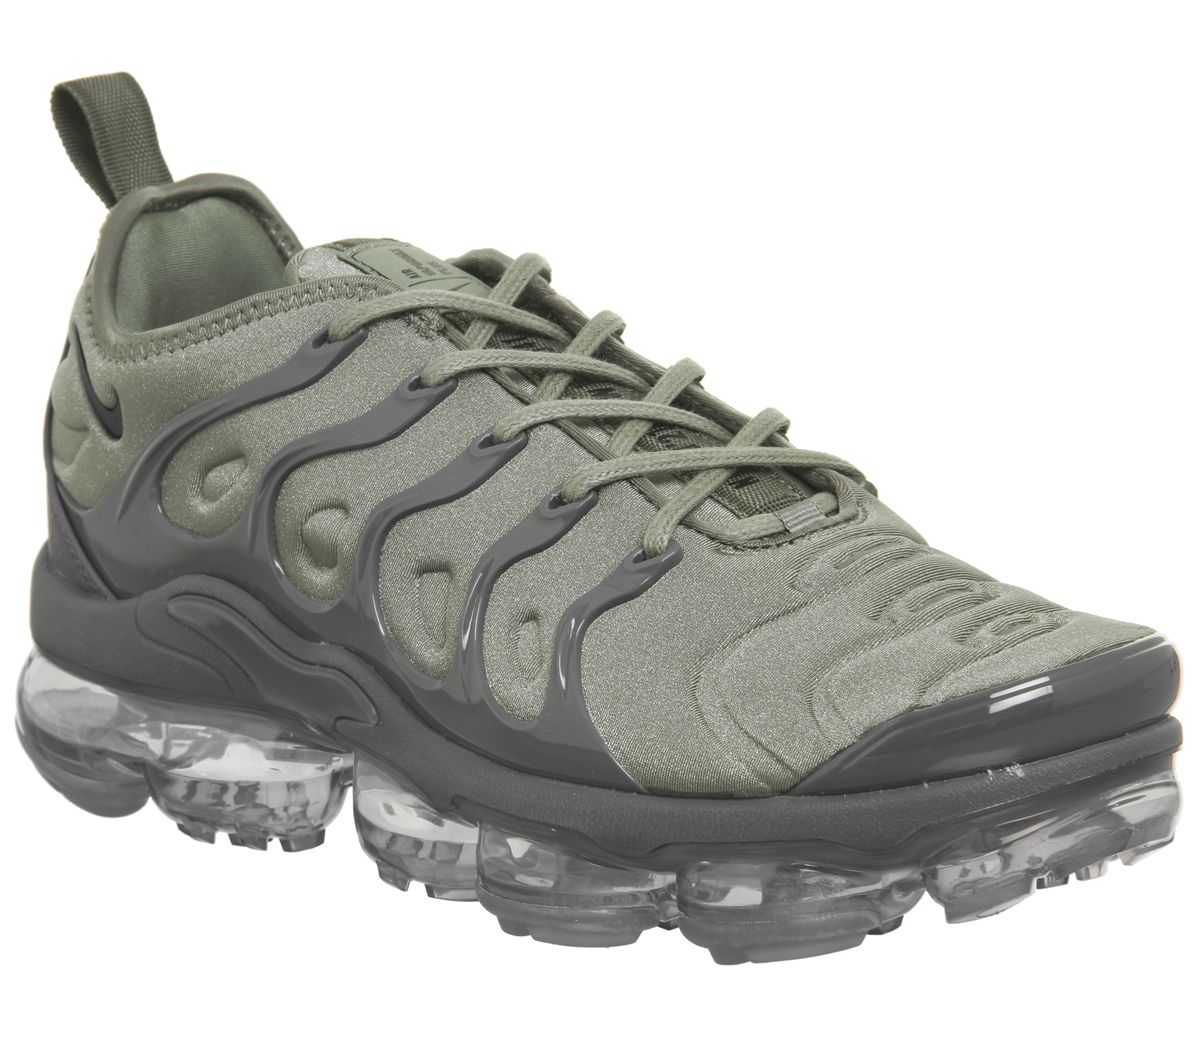 competitive price 2f086 10235 Air Vapormax Plus Trainers